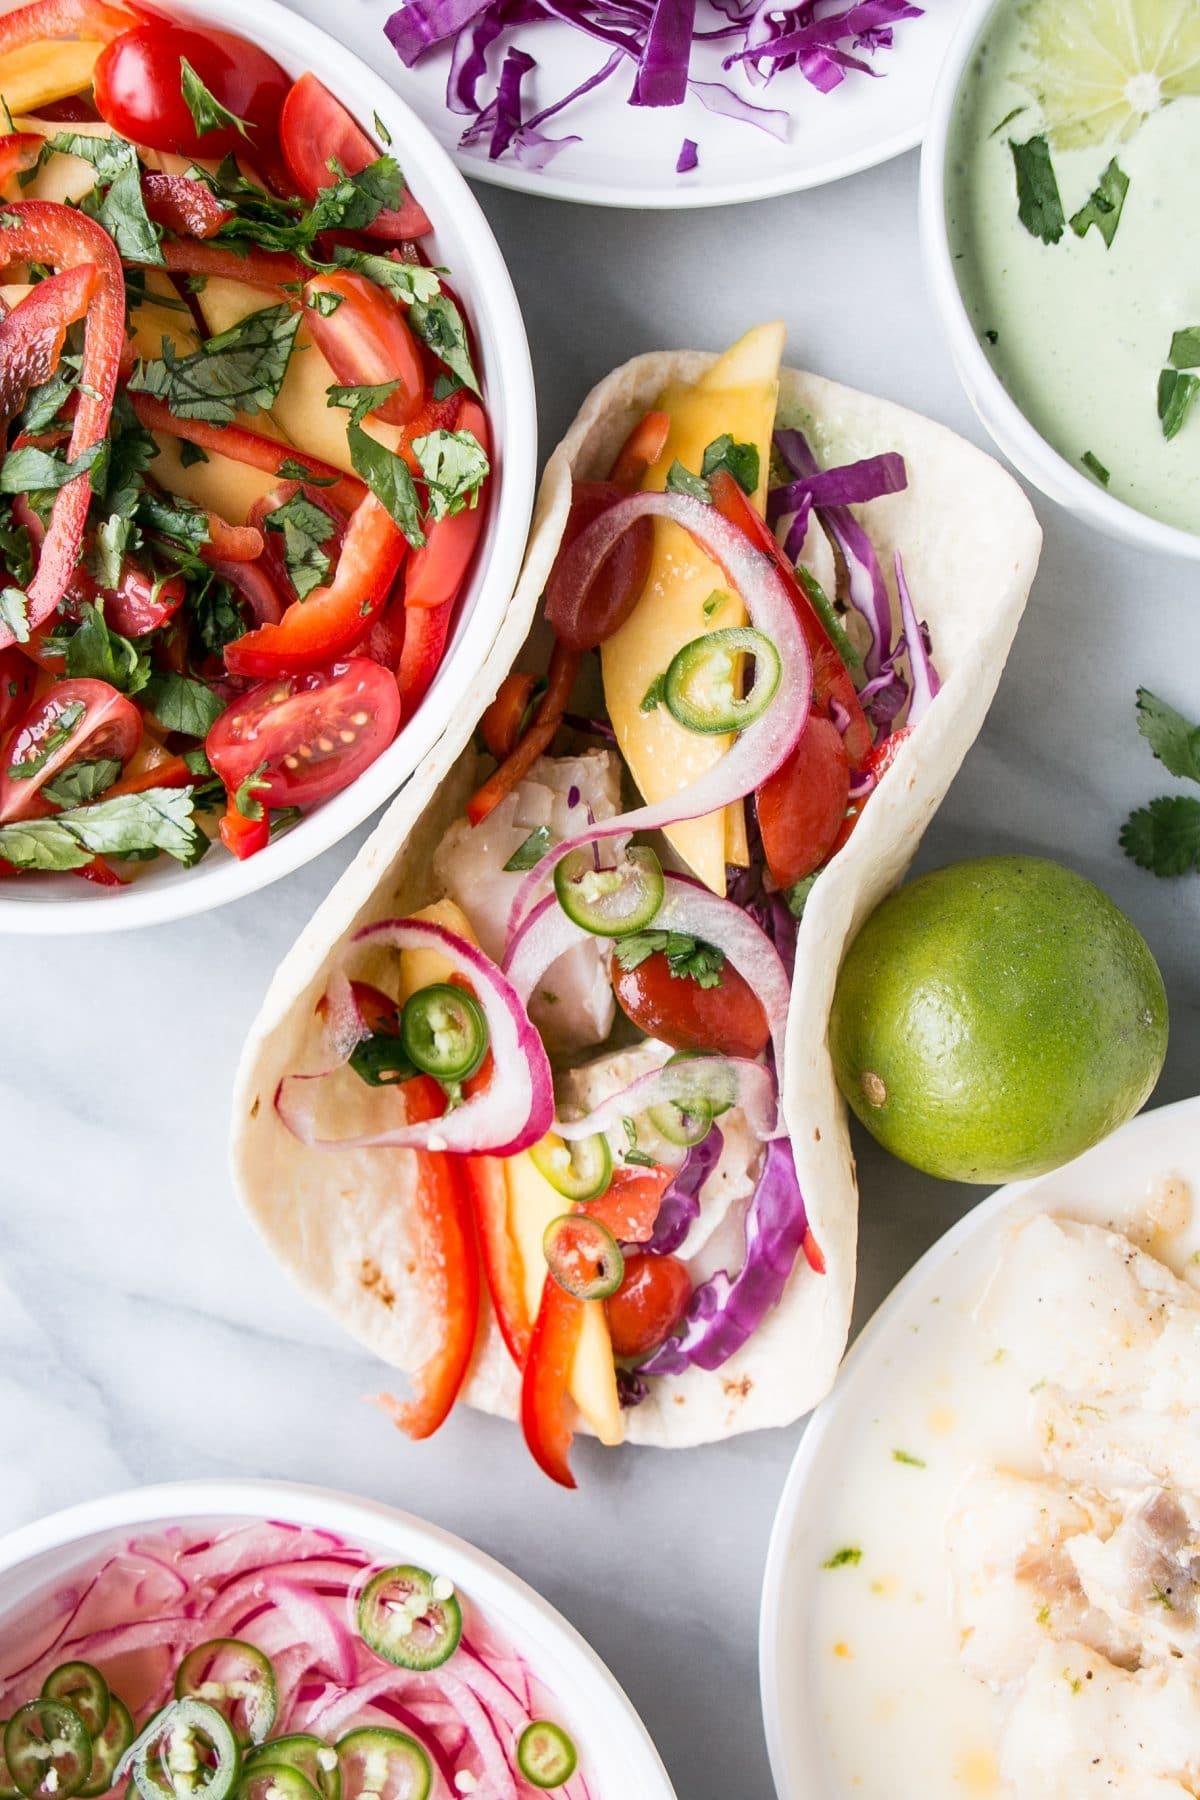 Fresh Lime & Chilli Fish Tacos with Mango Salsa! #tacos #fishtacos #healthymeal